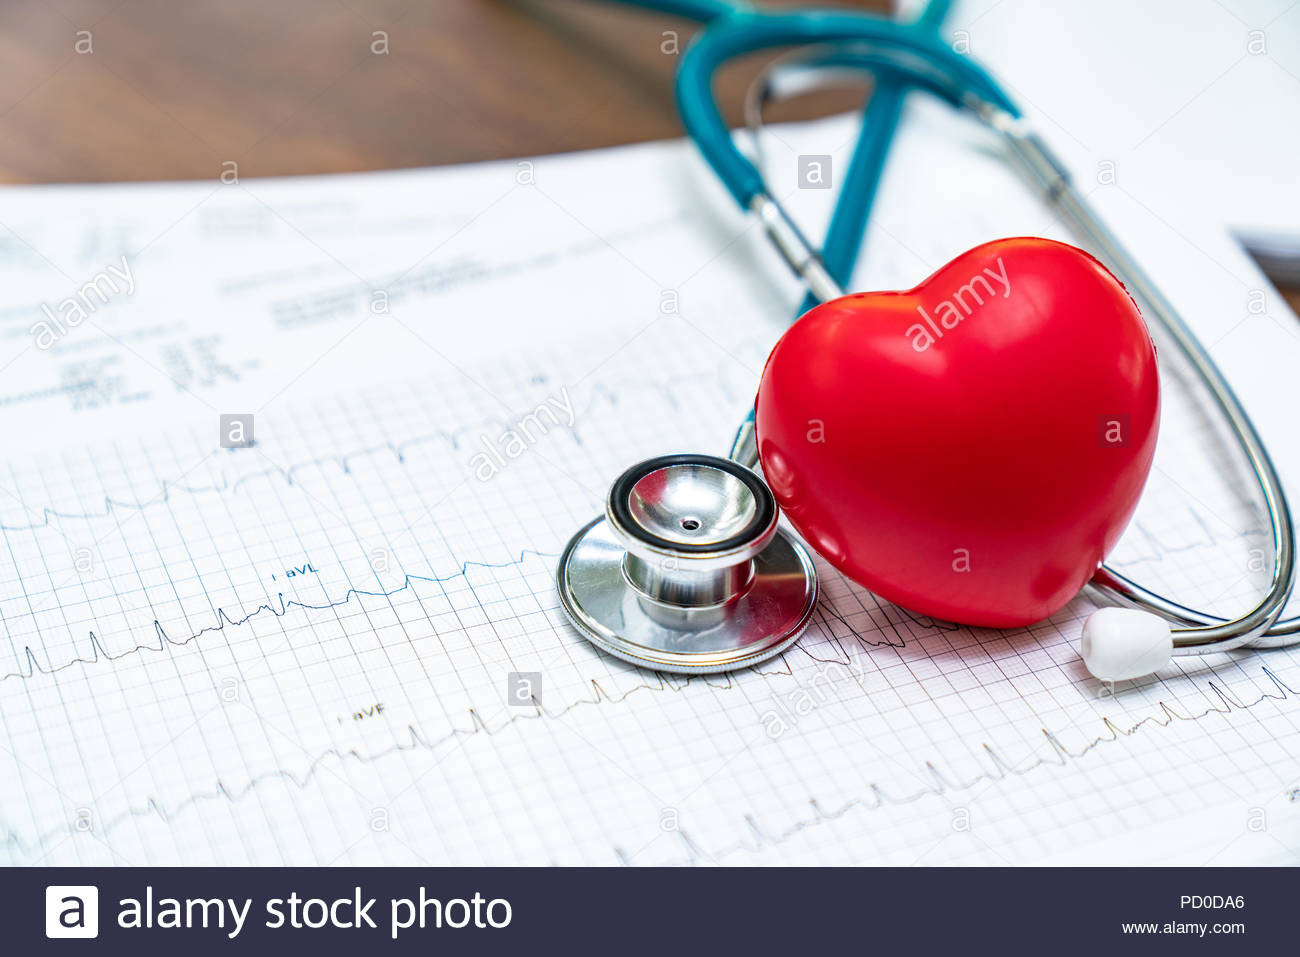 stethoscope and red heart Heart Check.Concept healthcare. - Stock Image